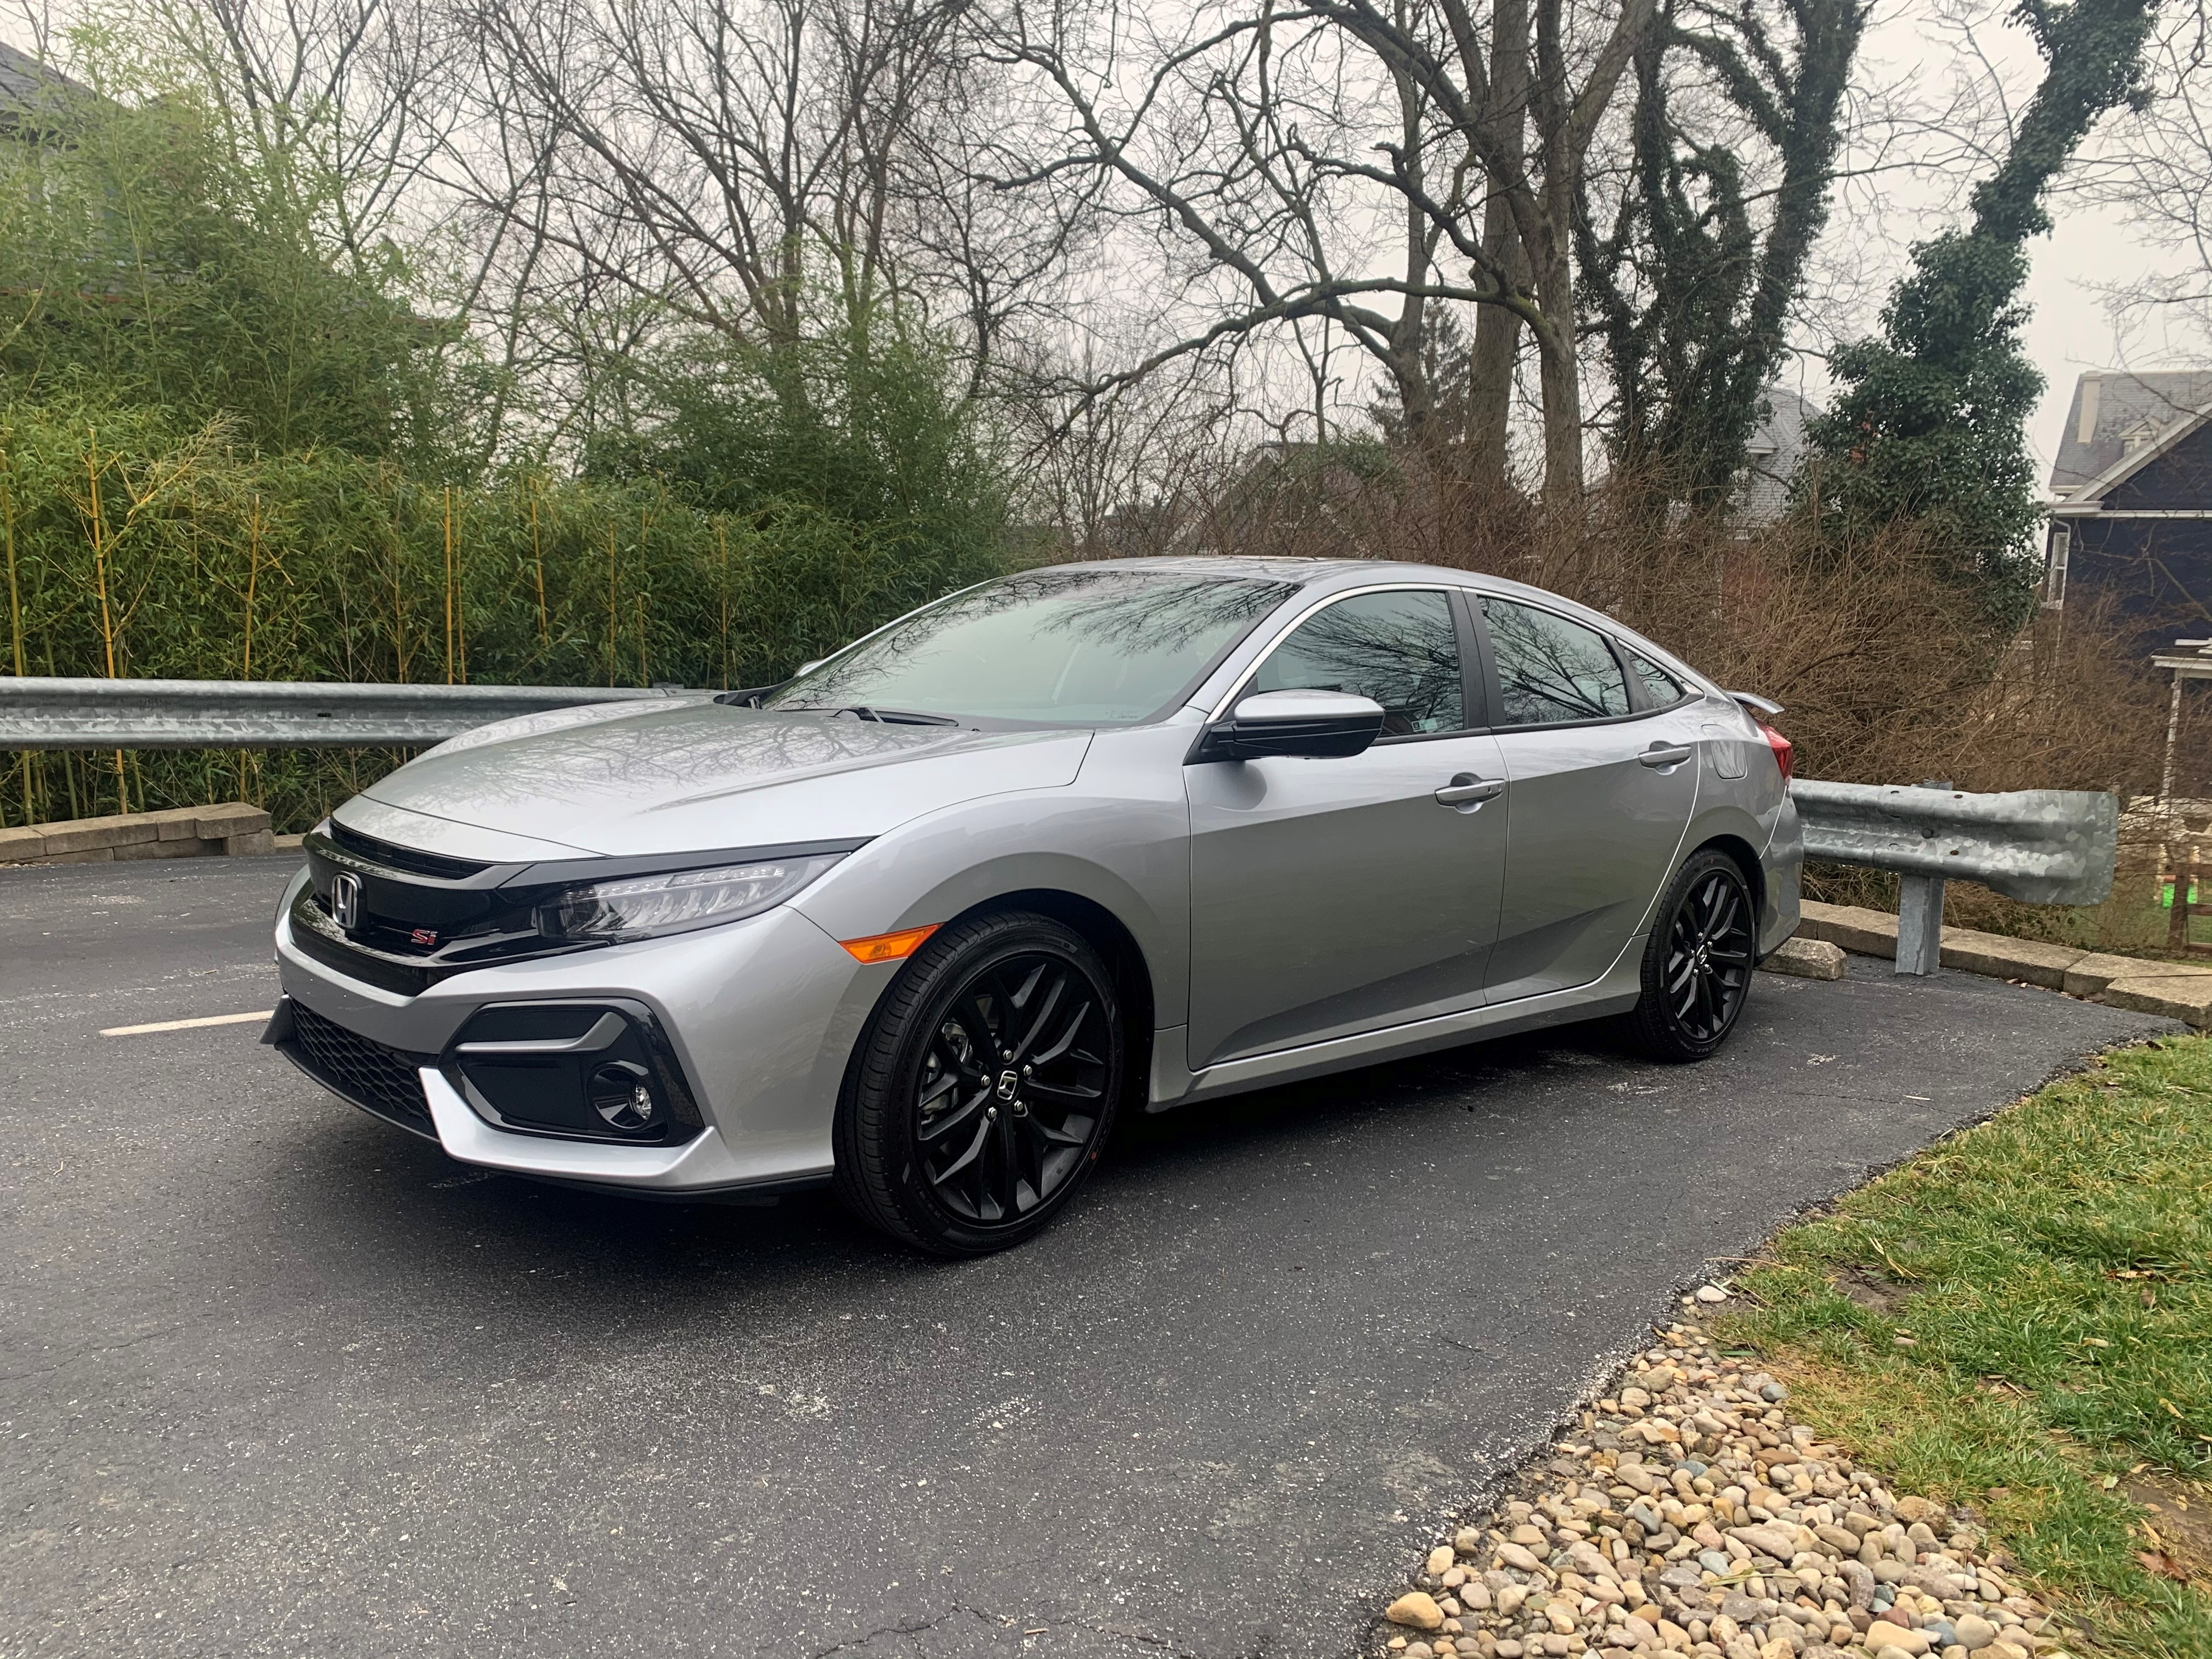 Signed 2020 Honda Civic Si 205 28 Per Month 2 208 Das With Tax Share A Deal Leasehackr Forum